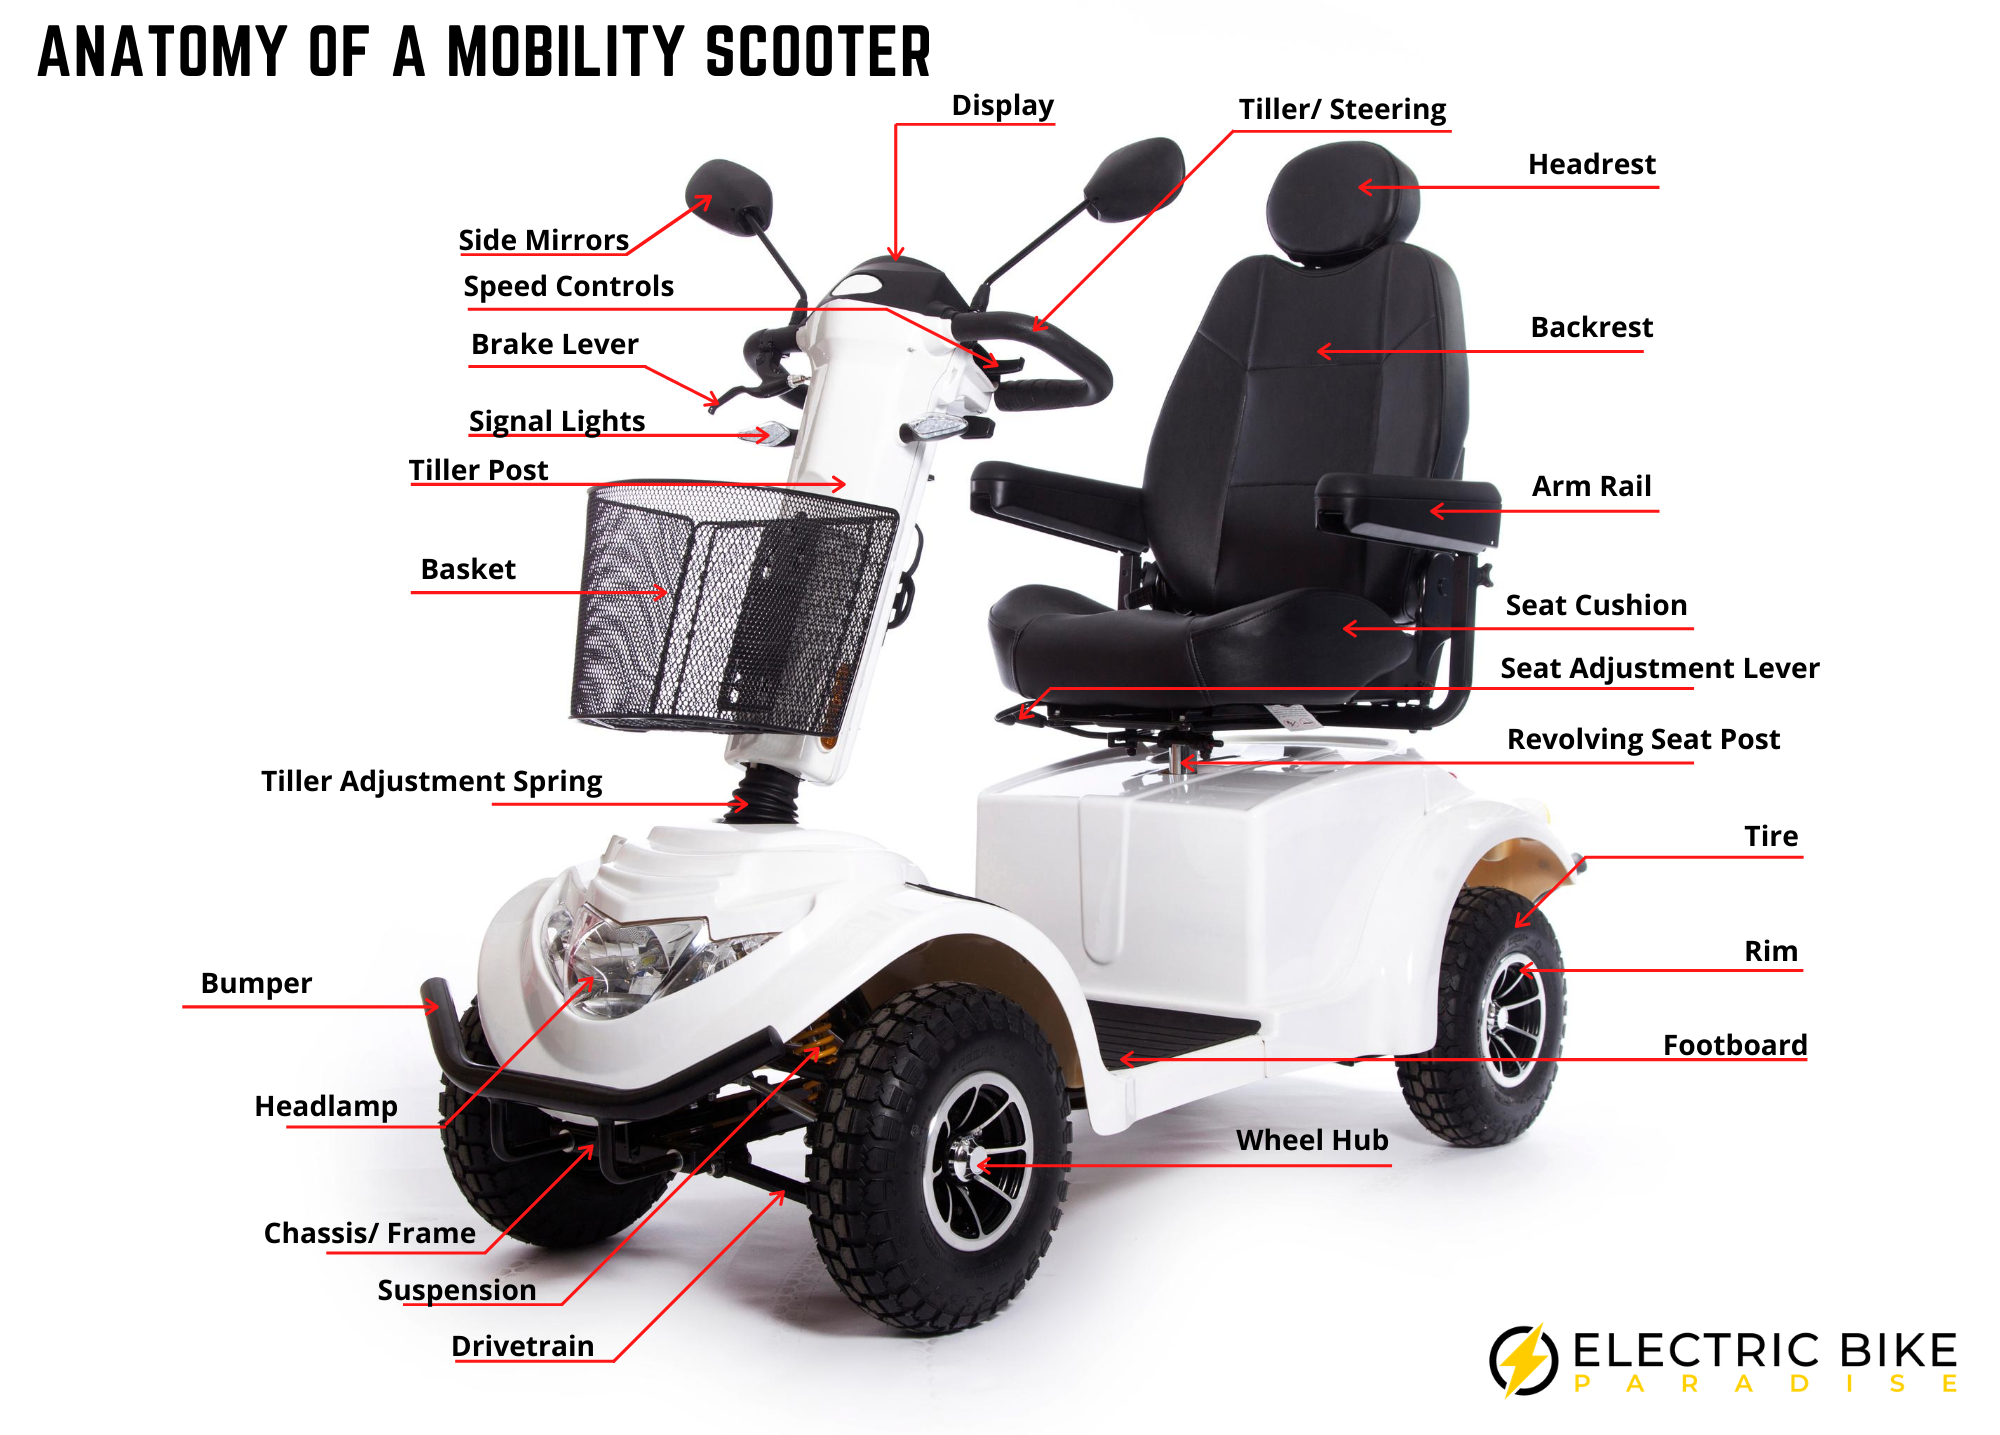 Parts of the Mobility Scooter